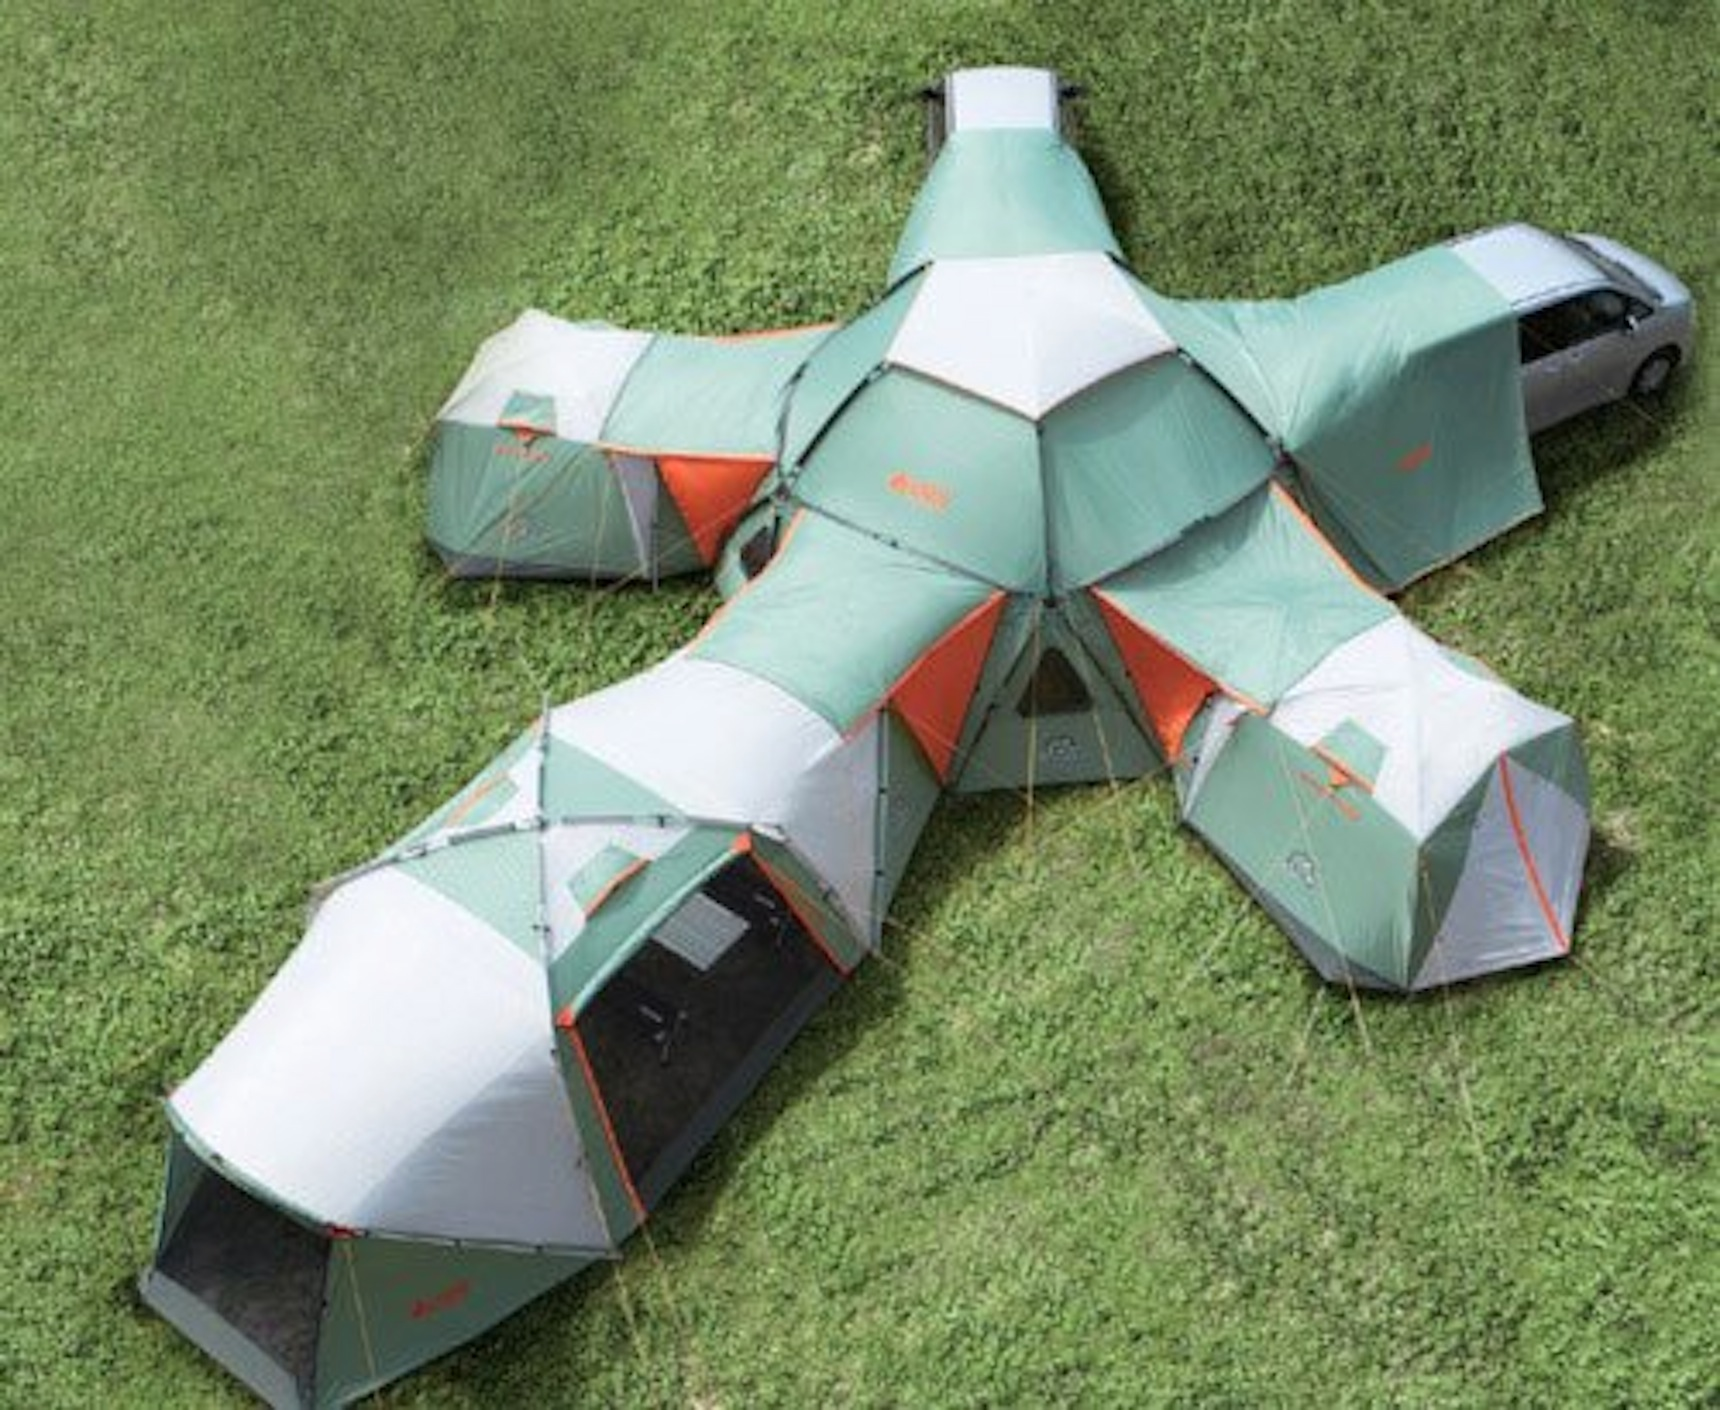 Camp and Hike tent mansion!